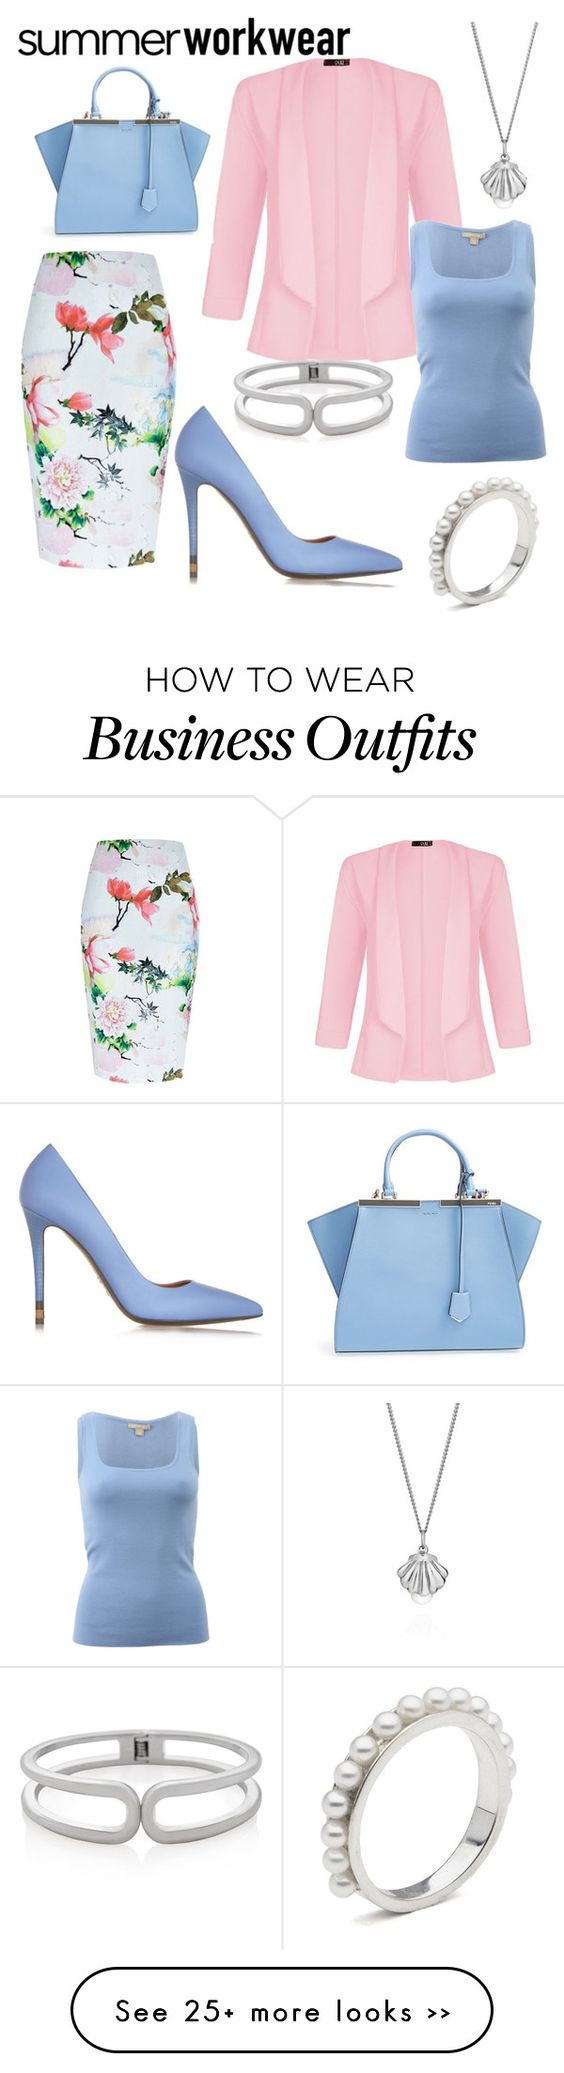 """summer work wear"" by sheena-sapphire on Polyvore"